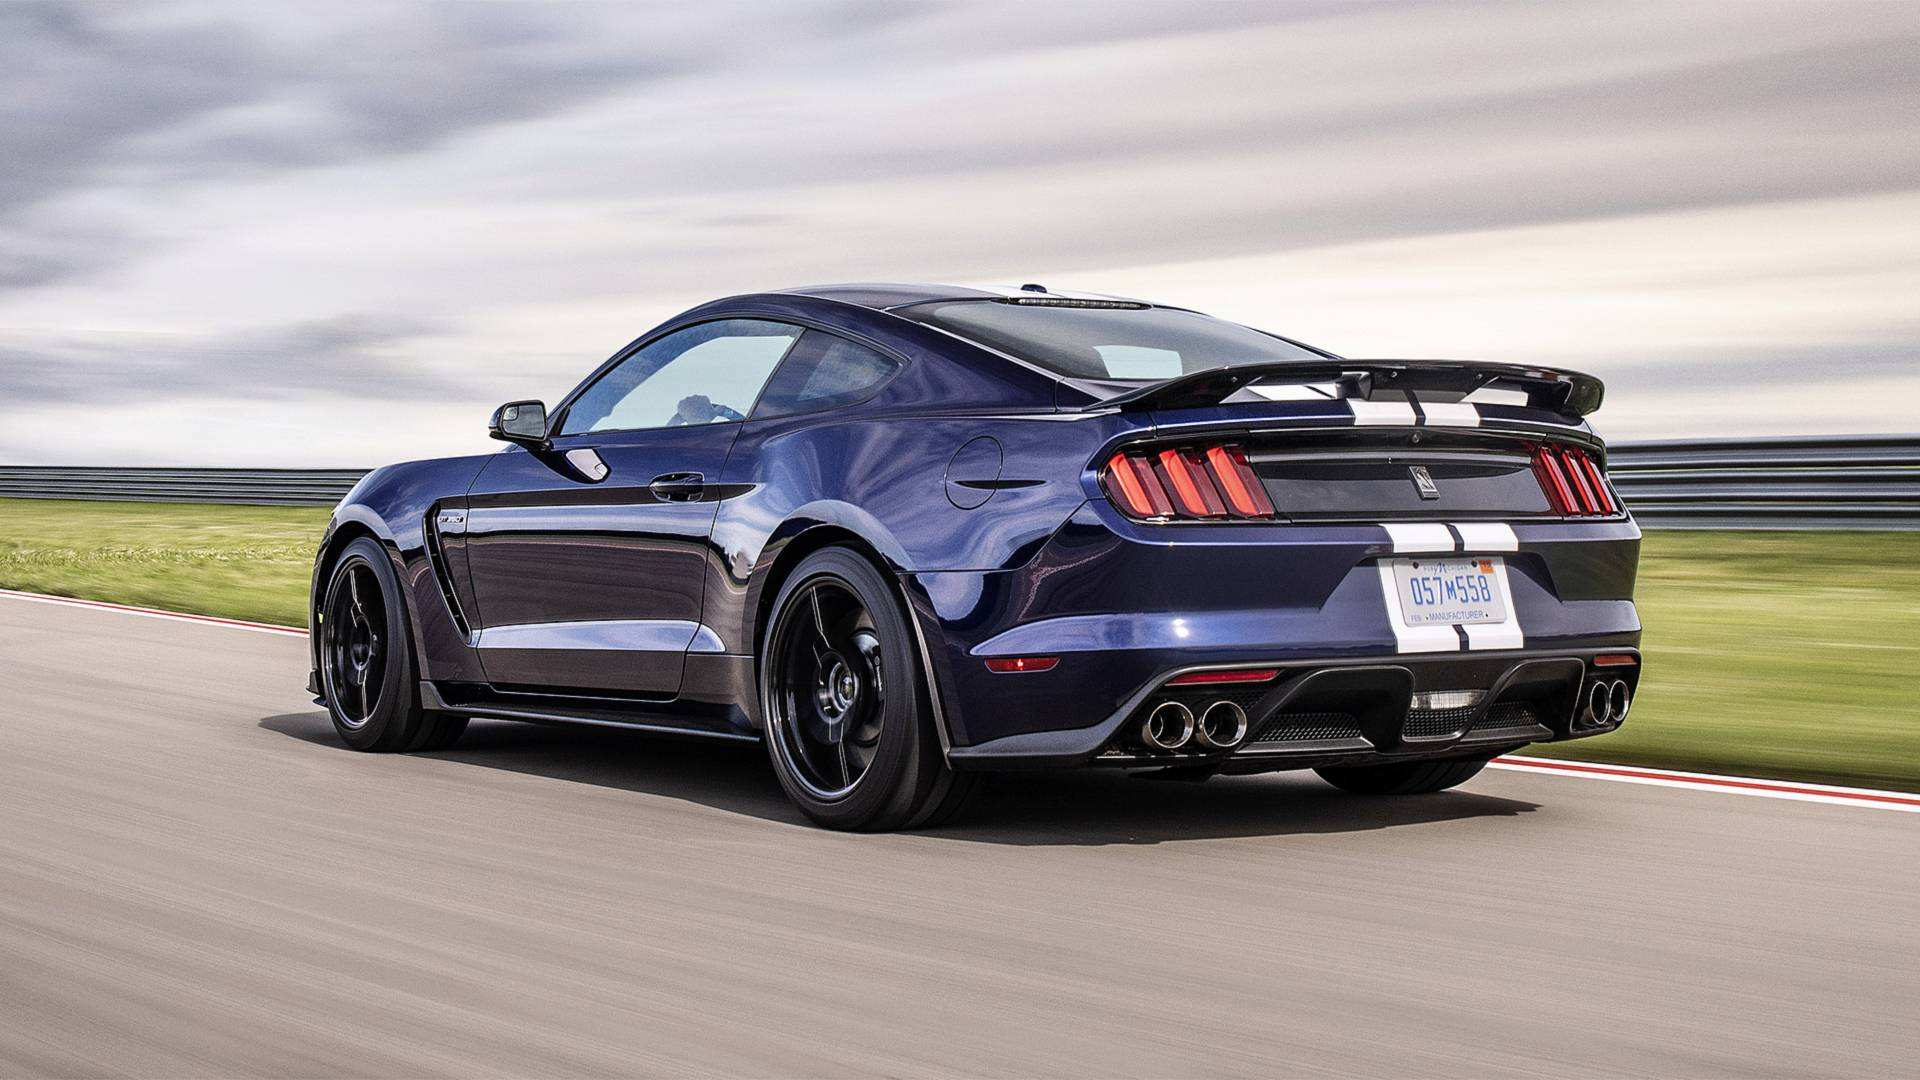 87 The Best 2019 Ford Mustang Shelby Gt 350 Photos